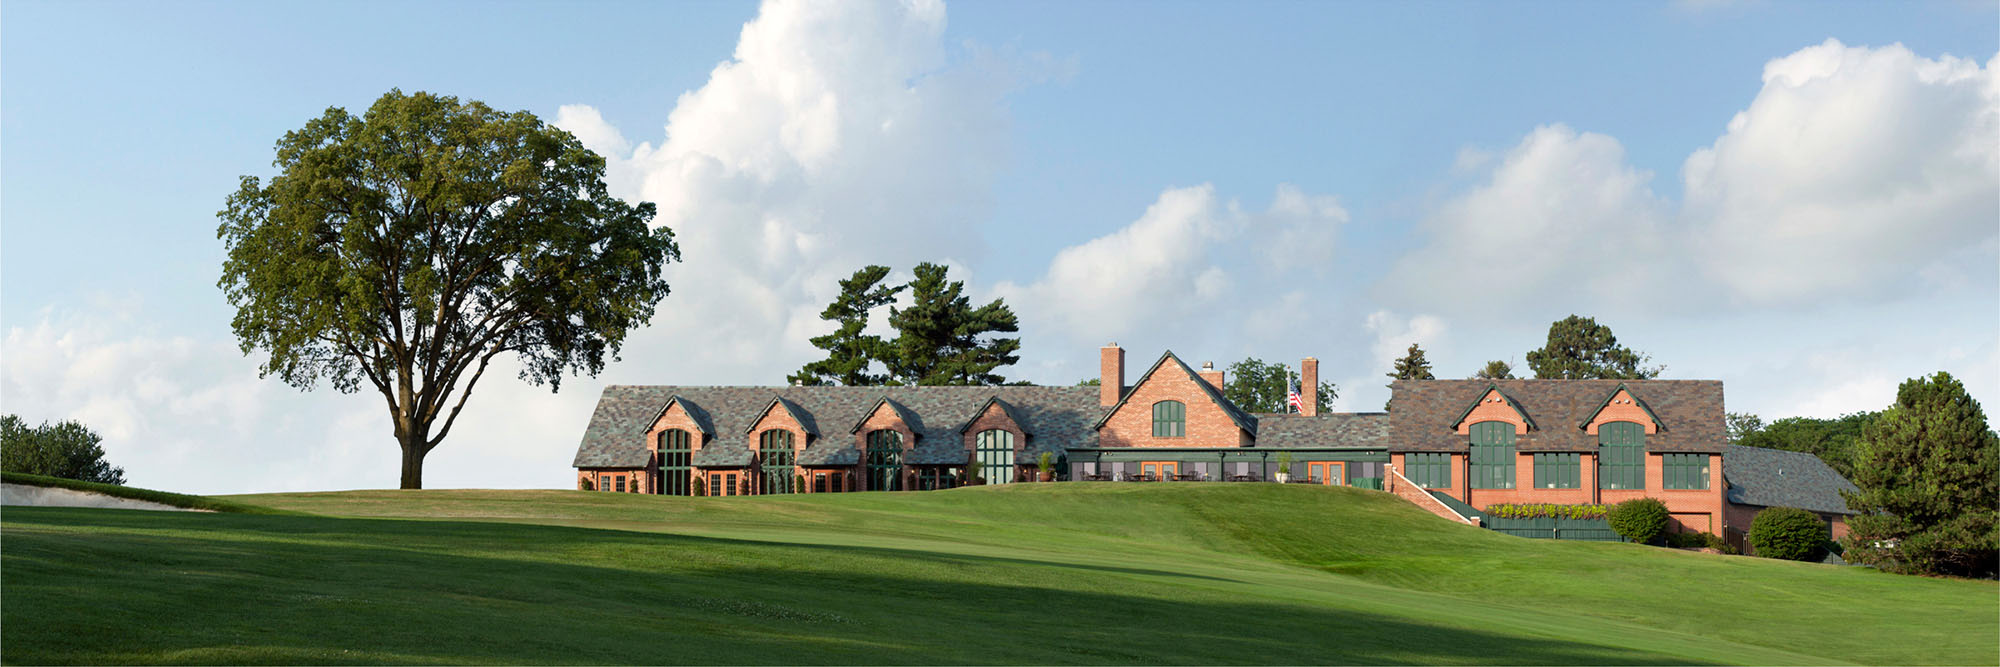 Golf Course Image - Omaha Country Club Clubhouse